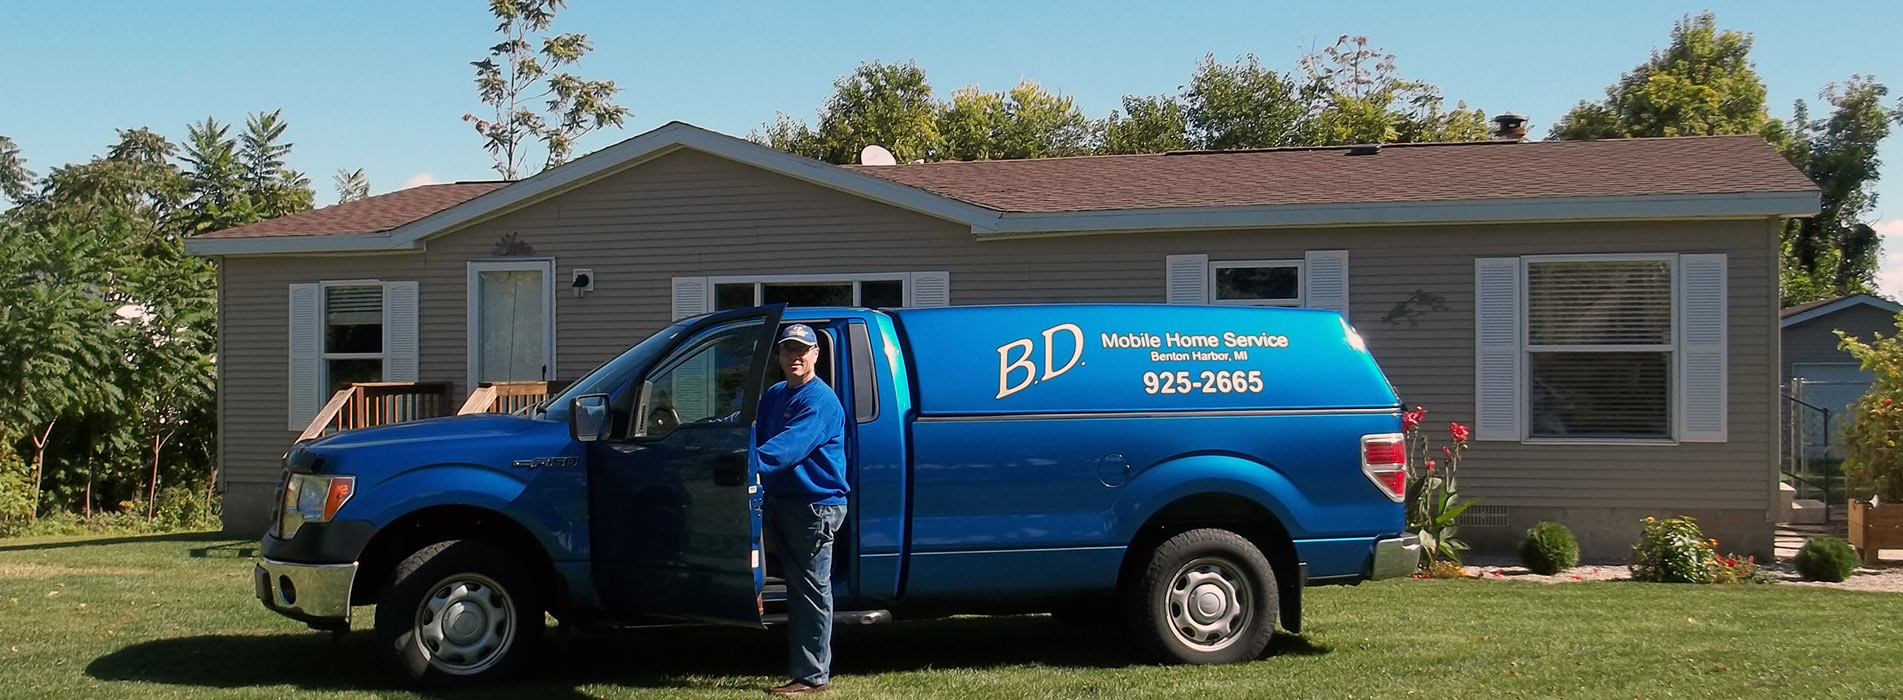 Mobile Home Repair in Michigan | Mobile Home Remodeling on mobile home service fairfield il, mobile home supplies, mobile home roofing, mobile home landscape, mobile home windows, mobile home products, mobile photography,